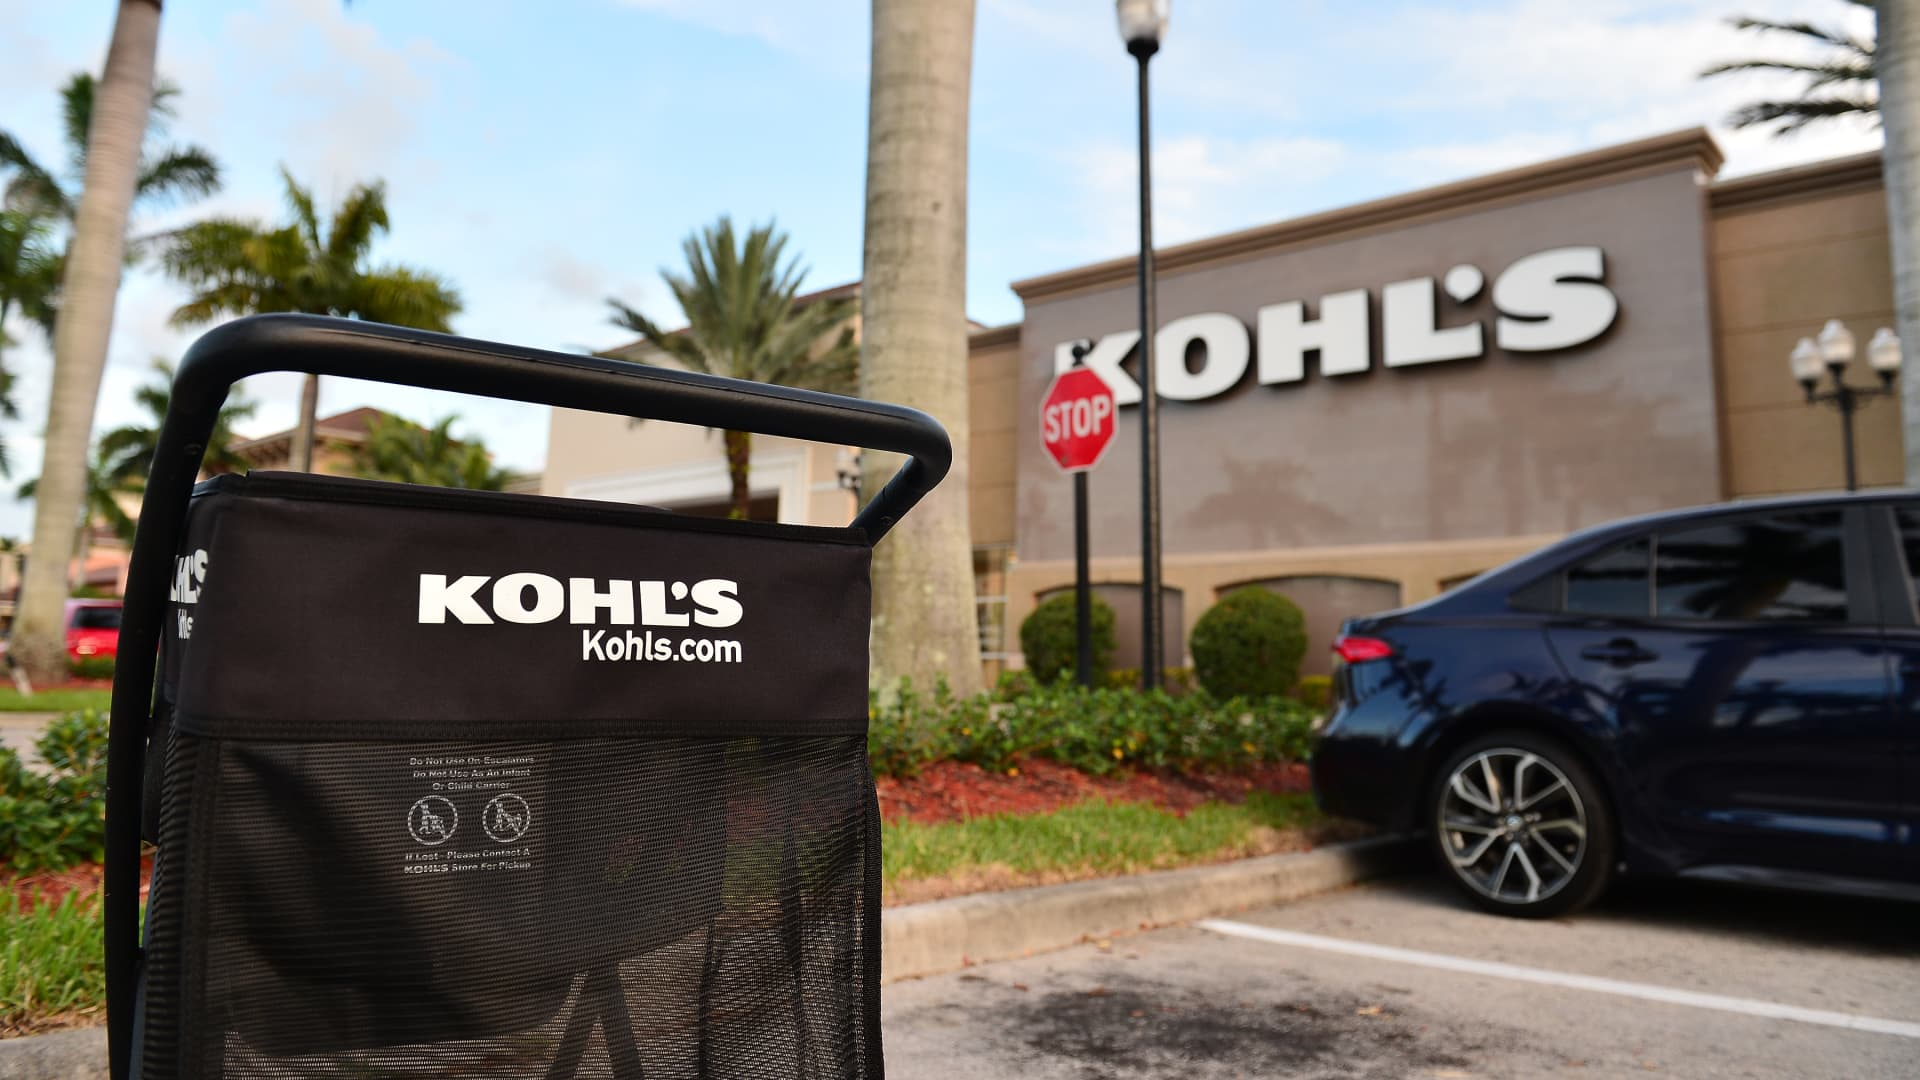 A view outside a Kohl's store in Miramar, Florida.